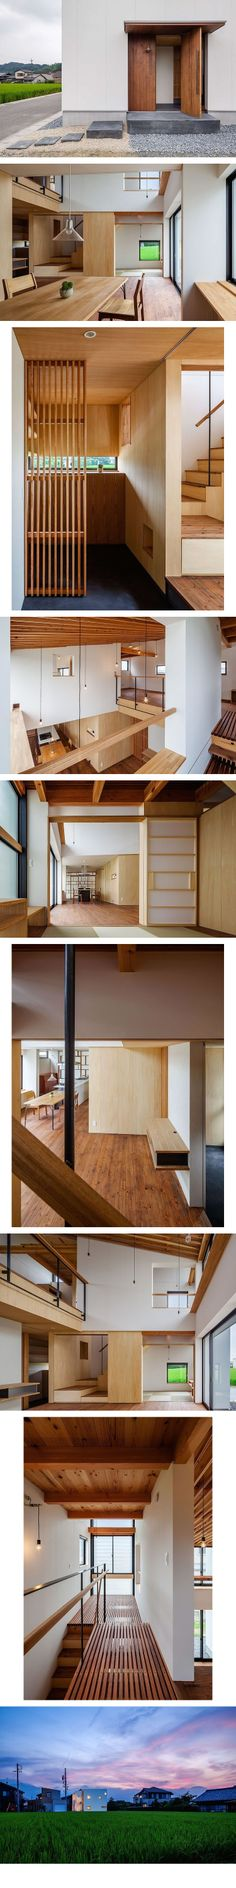 HOUSE YM by Fumihito Ohashi Architecture Studio in Mie, Japan